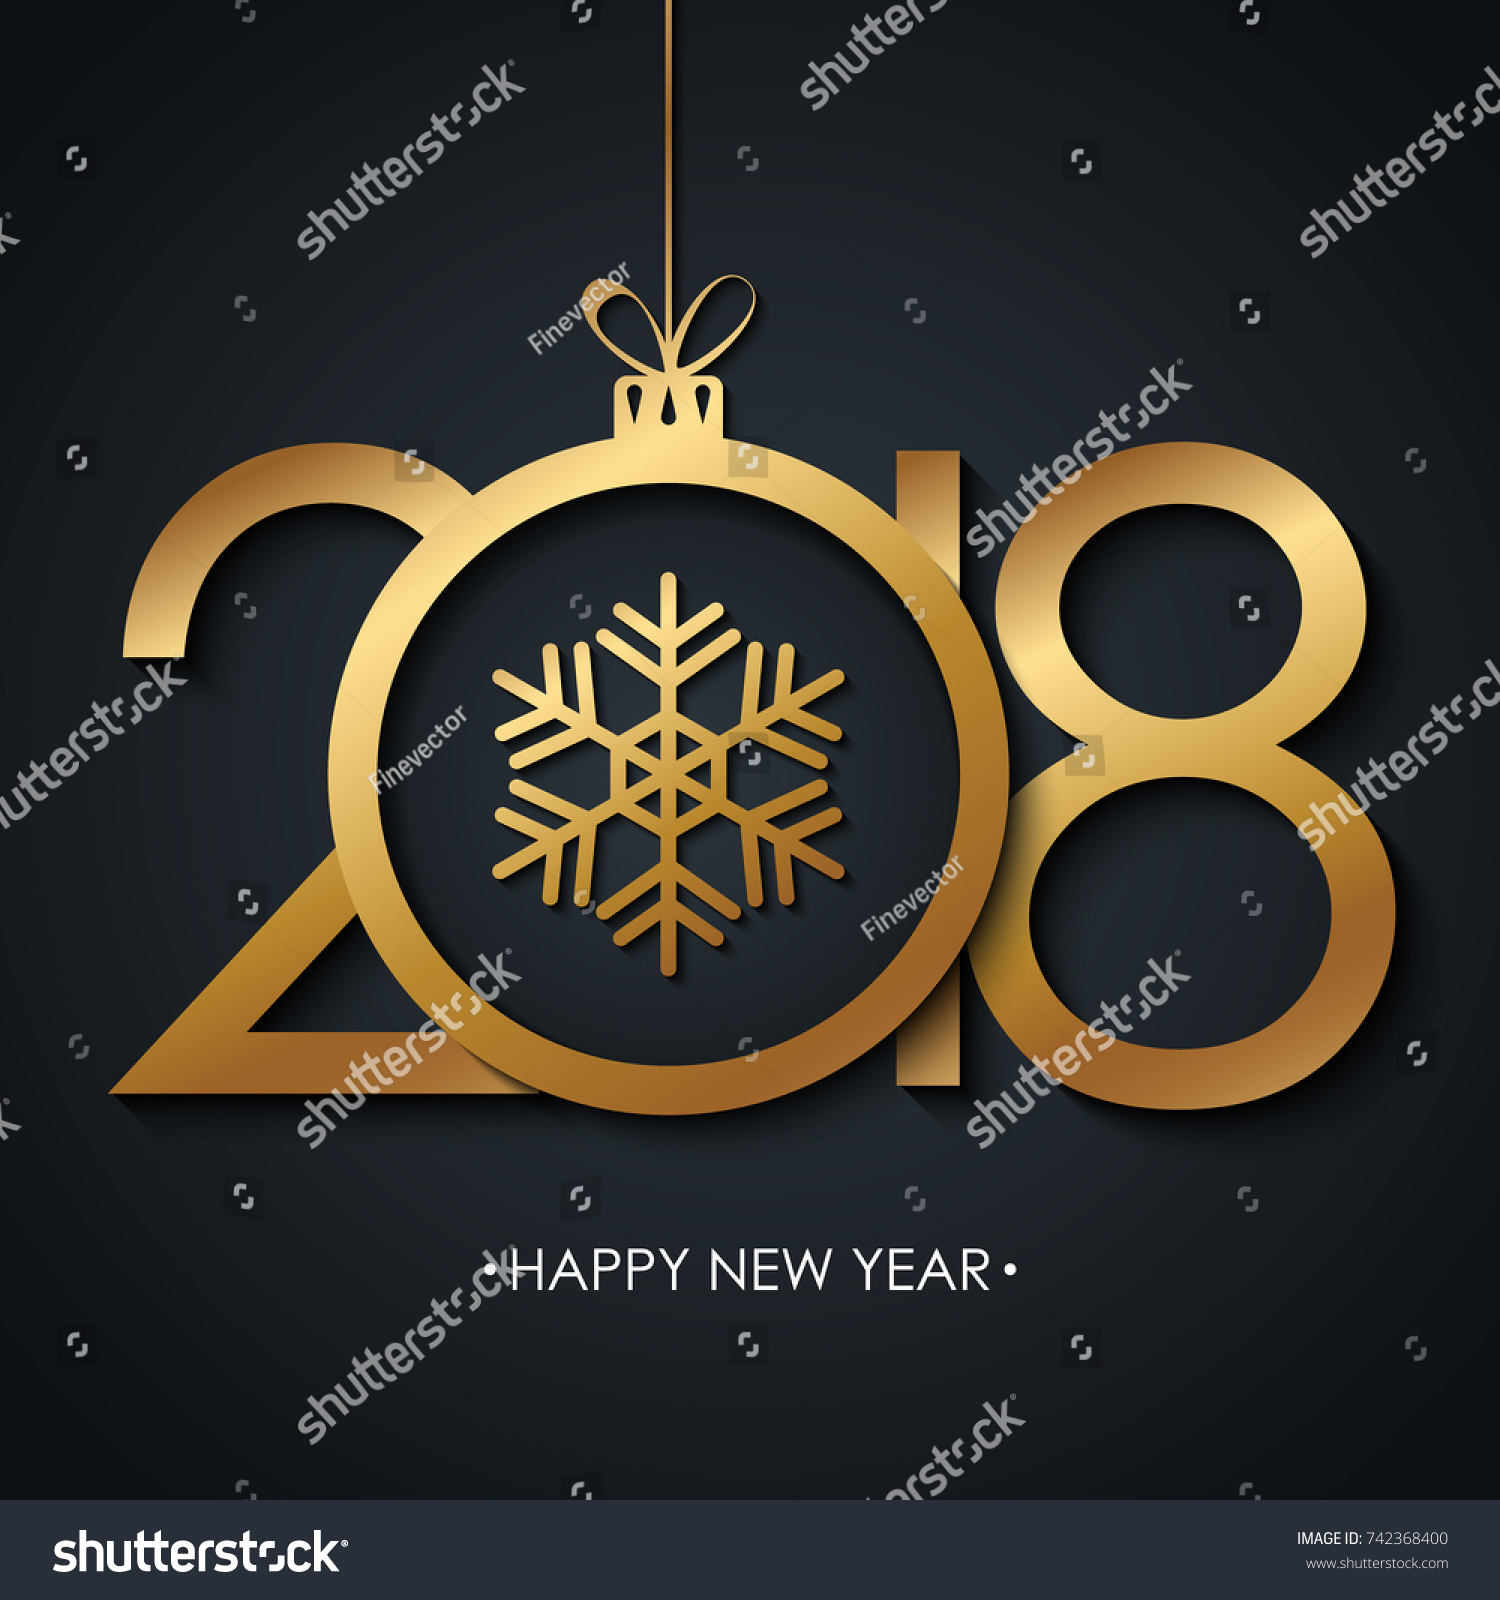 2018 happy new year greeting card stock vector 742368400